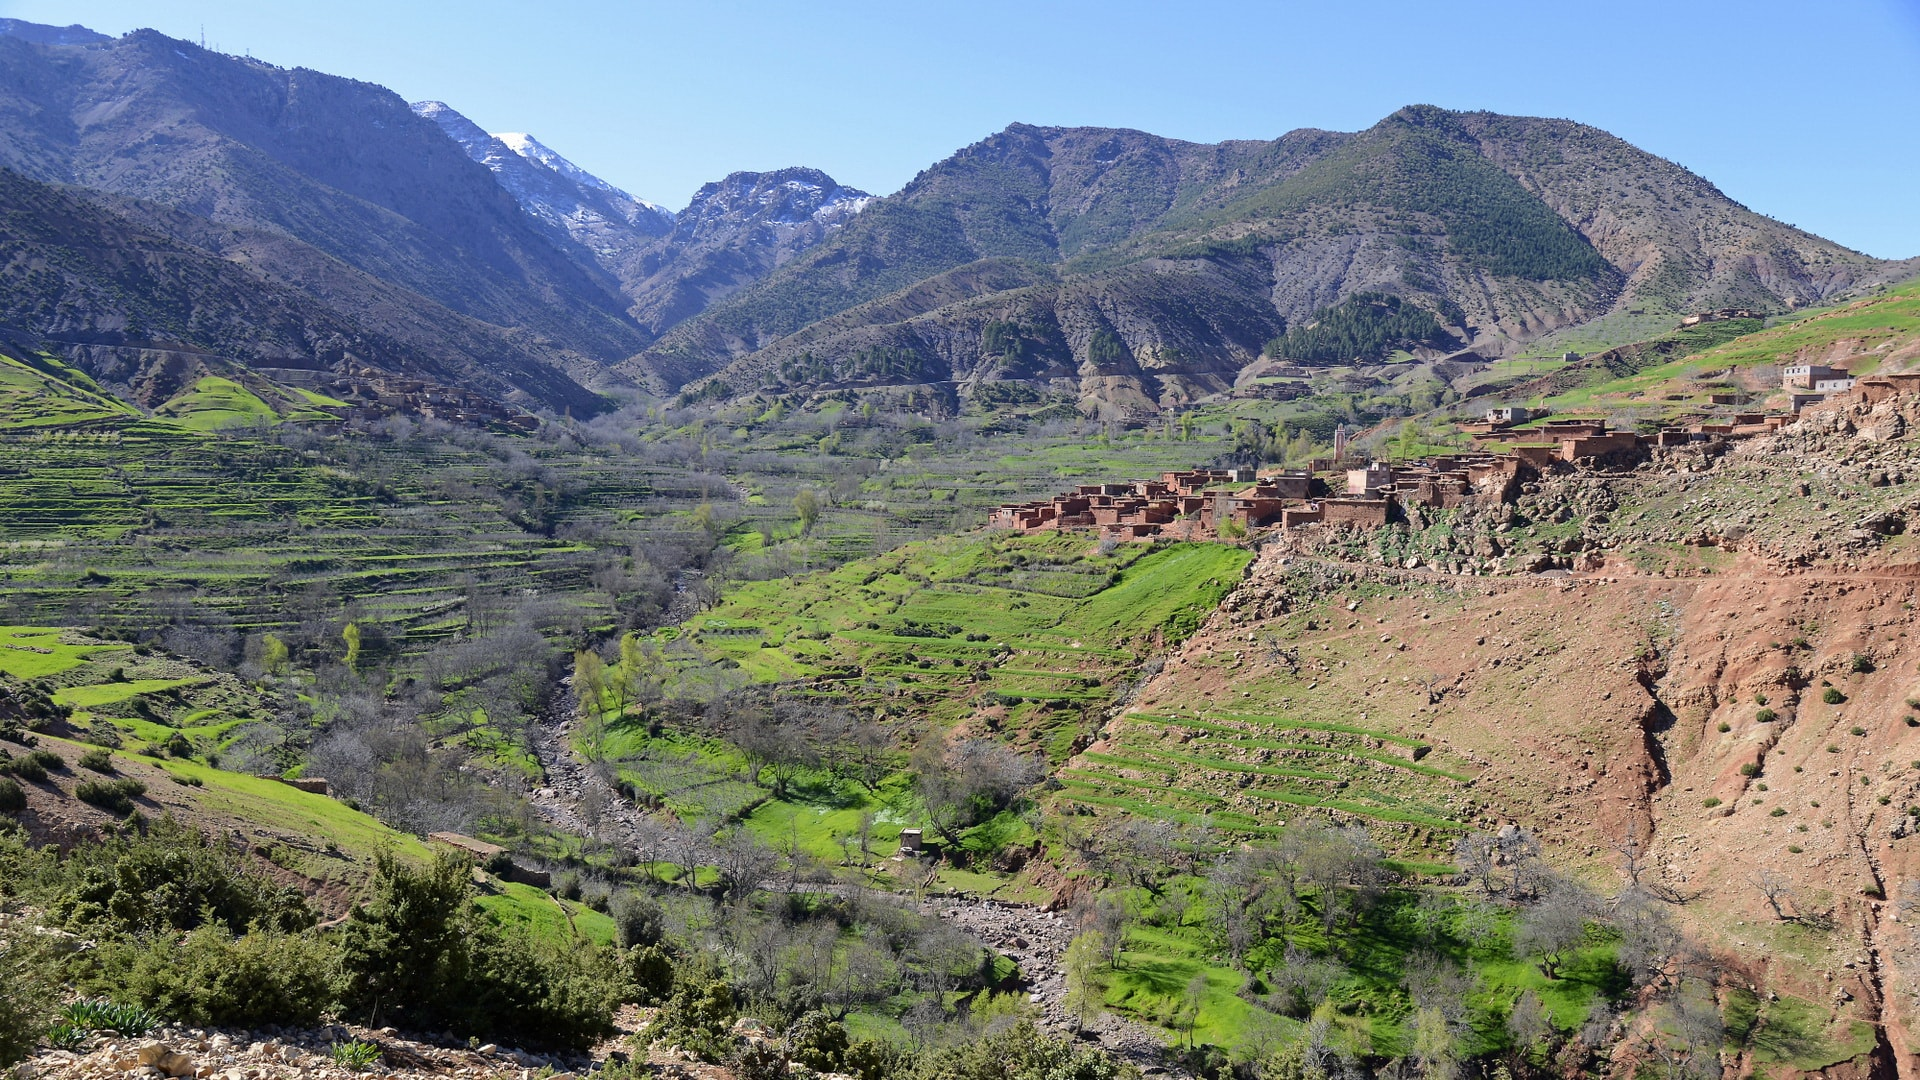 pathfinders treks - mount toubkal trek 6 days from ourika valley